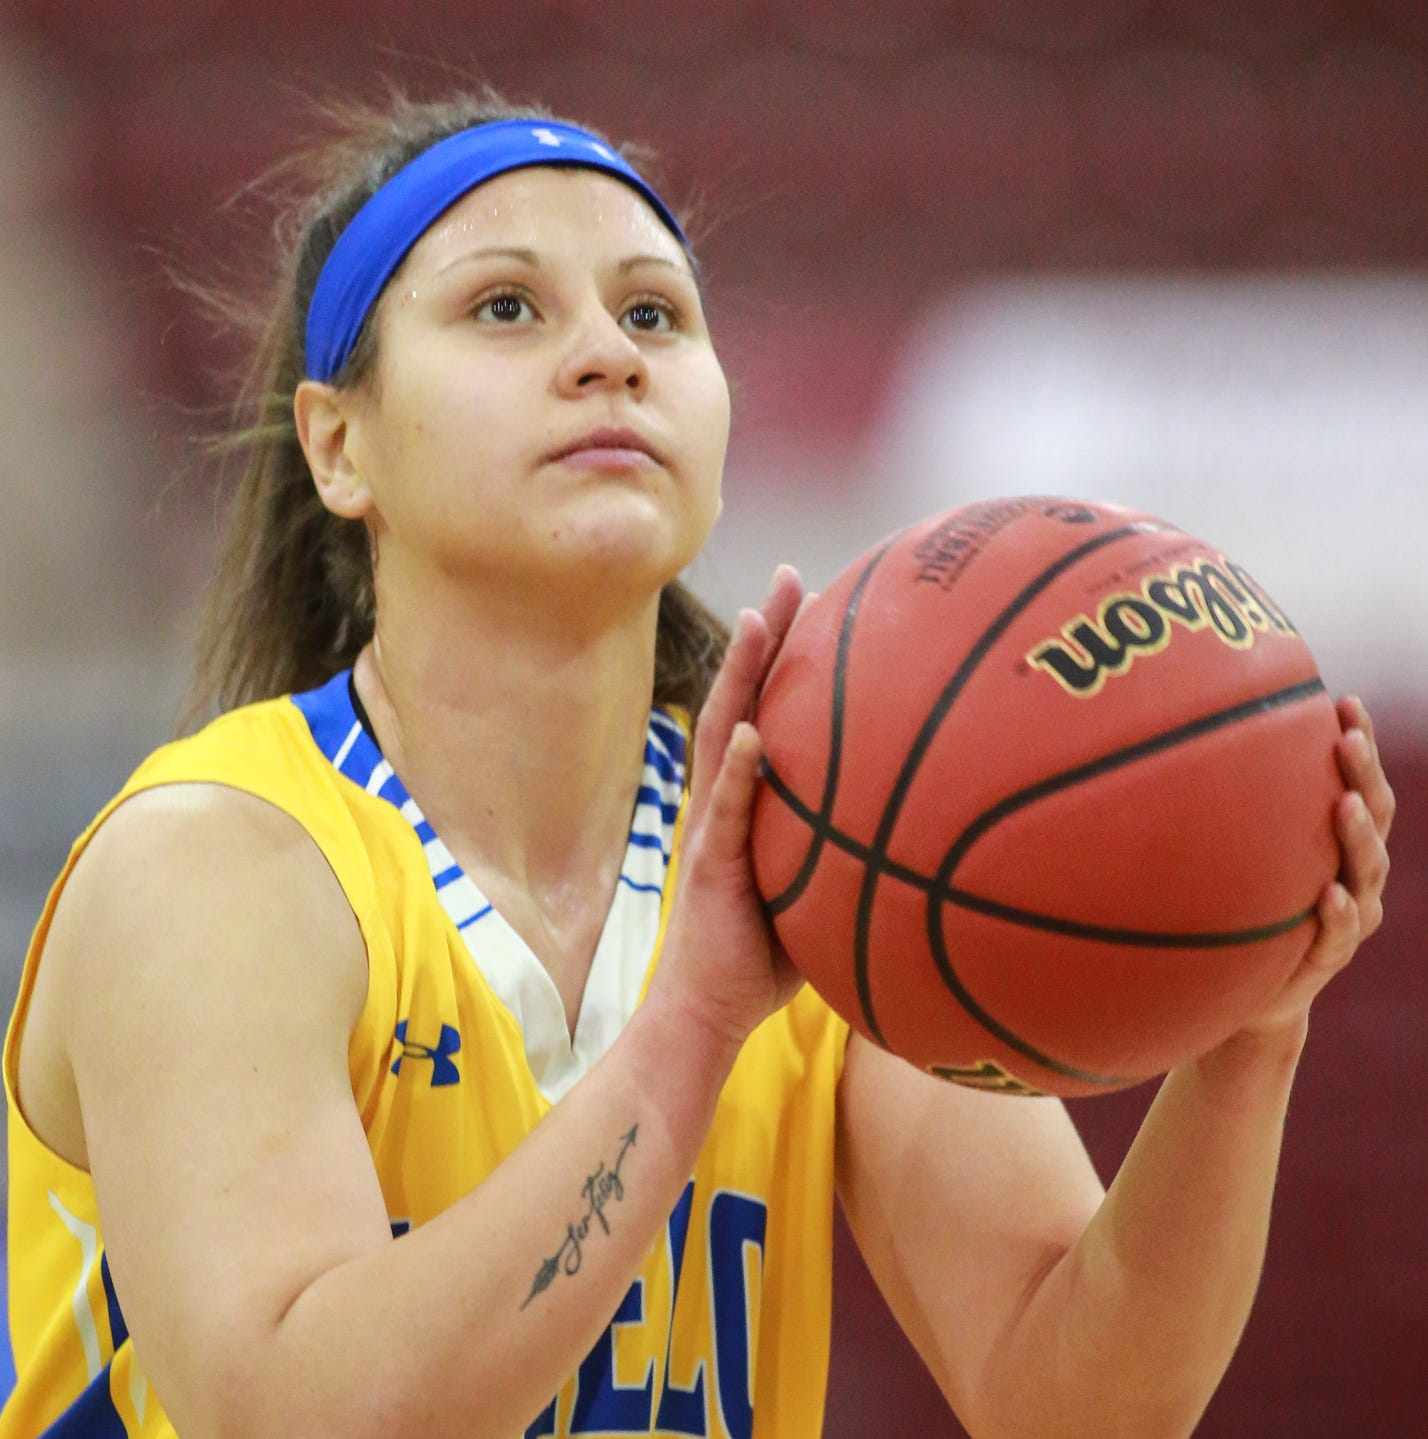 SOUTH CENTRAL REGIONAL: Angelo State women make Sweet 16 at Lady Buffs' expense